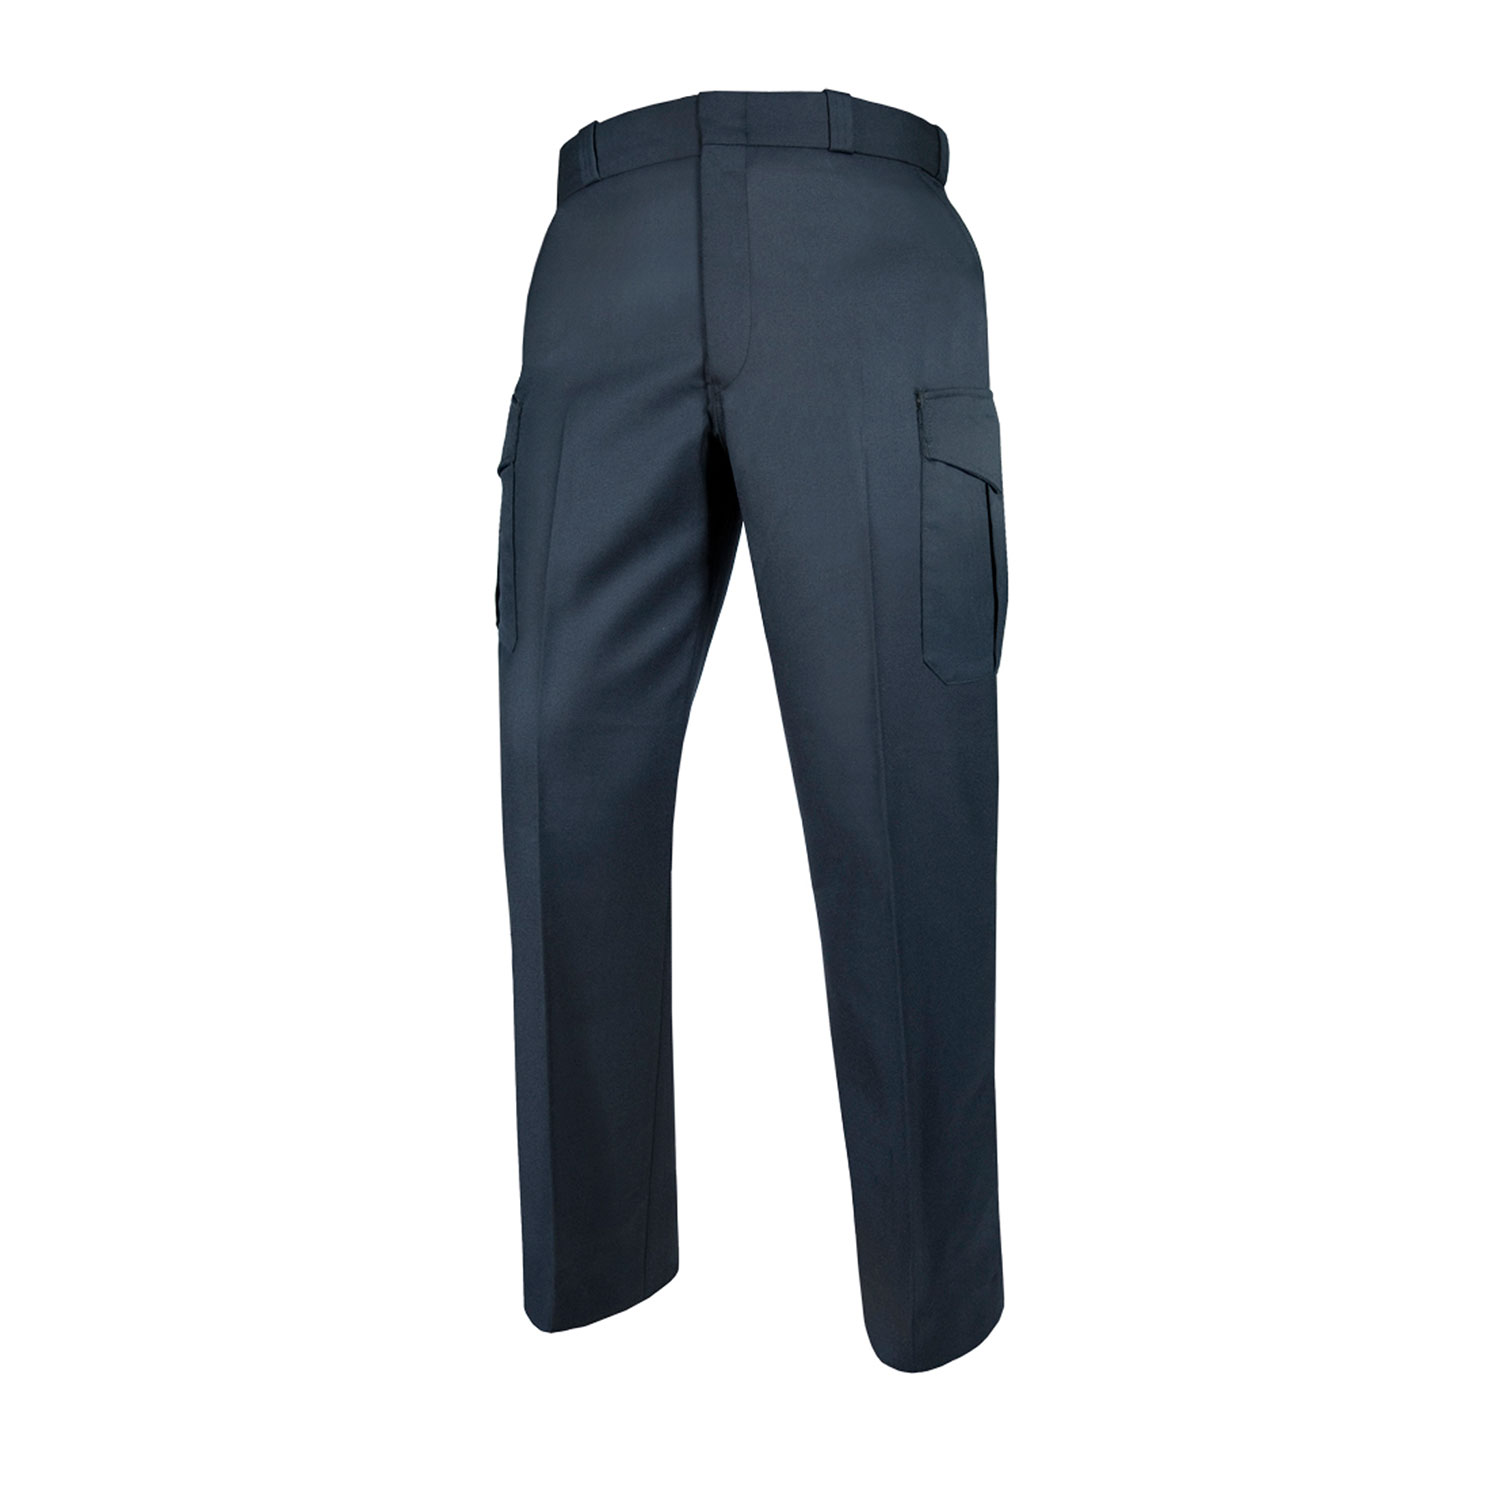 Elbeco Distinction Cargo Pocket Trousers